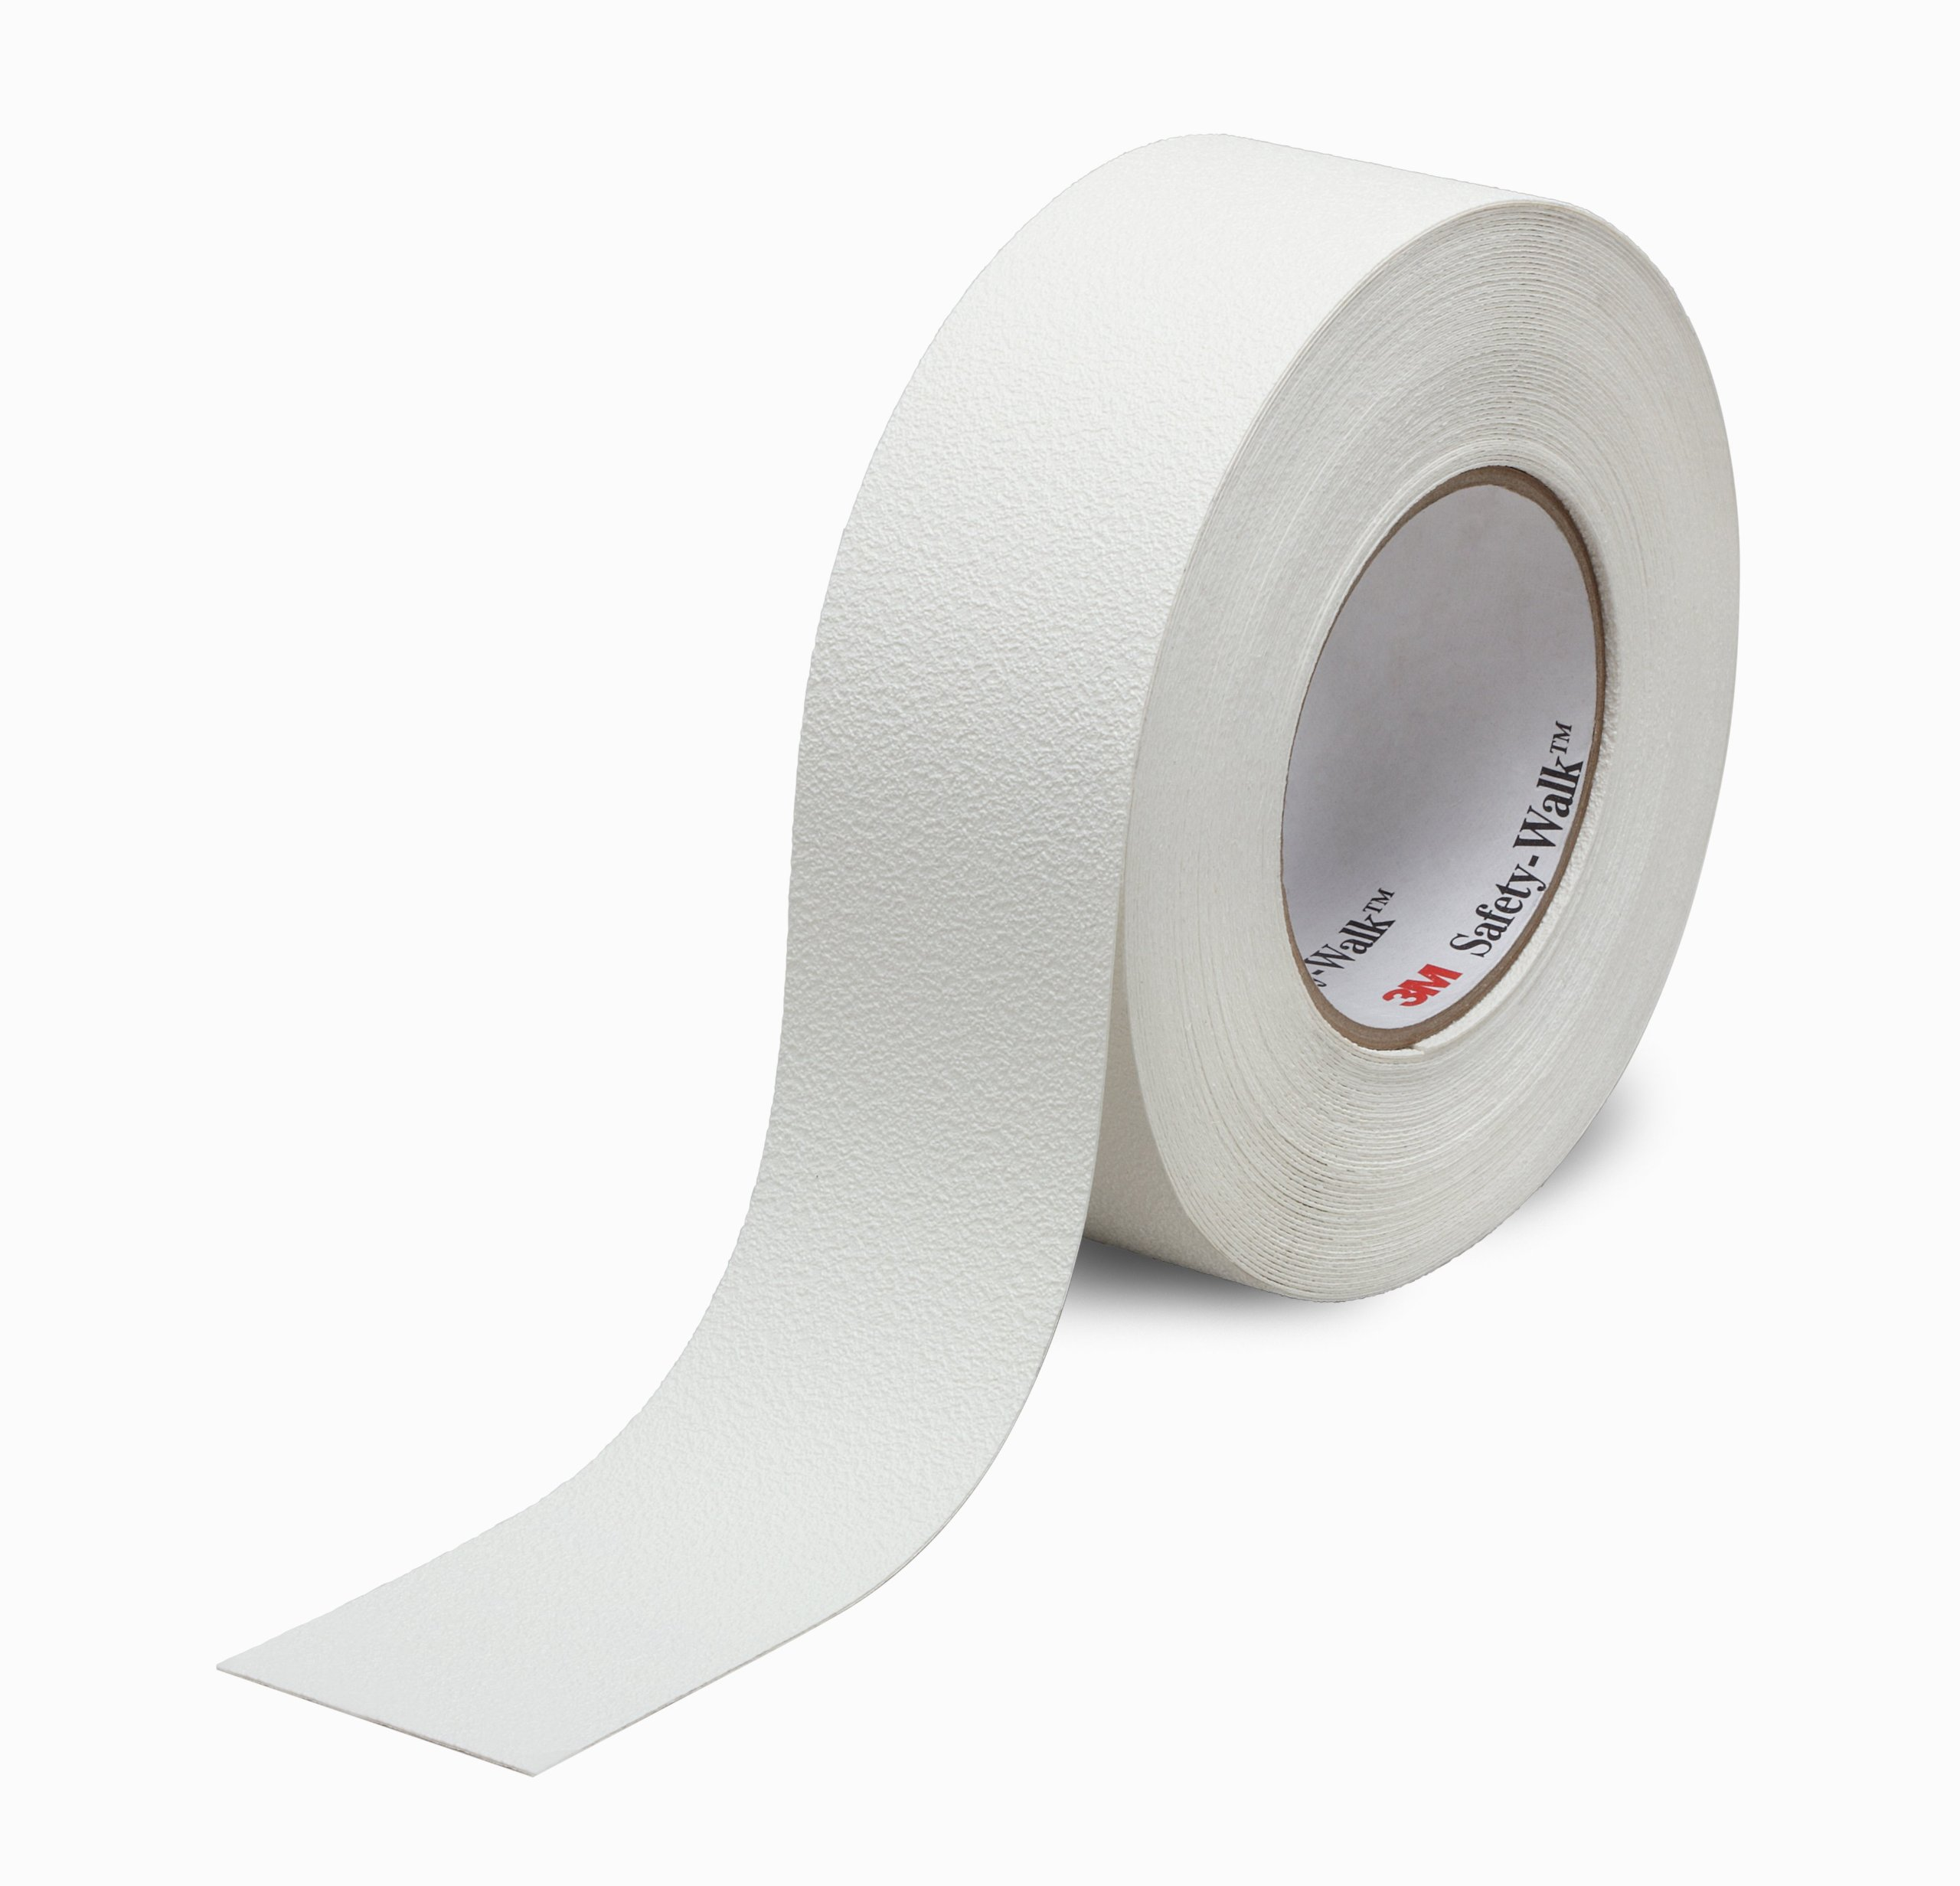 3M Safety-Walk Slip-Resistant Fine Resilient Tapes and Treads 280, White, 1'' Width, 60' Length (Pack of 4 Rolls)